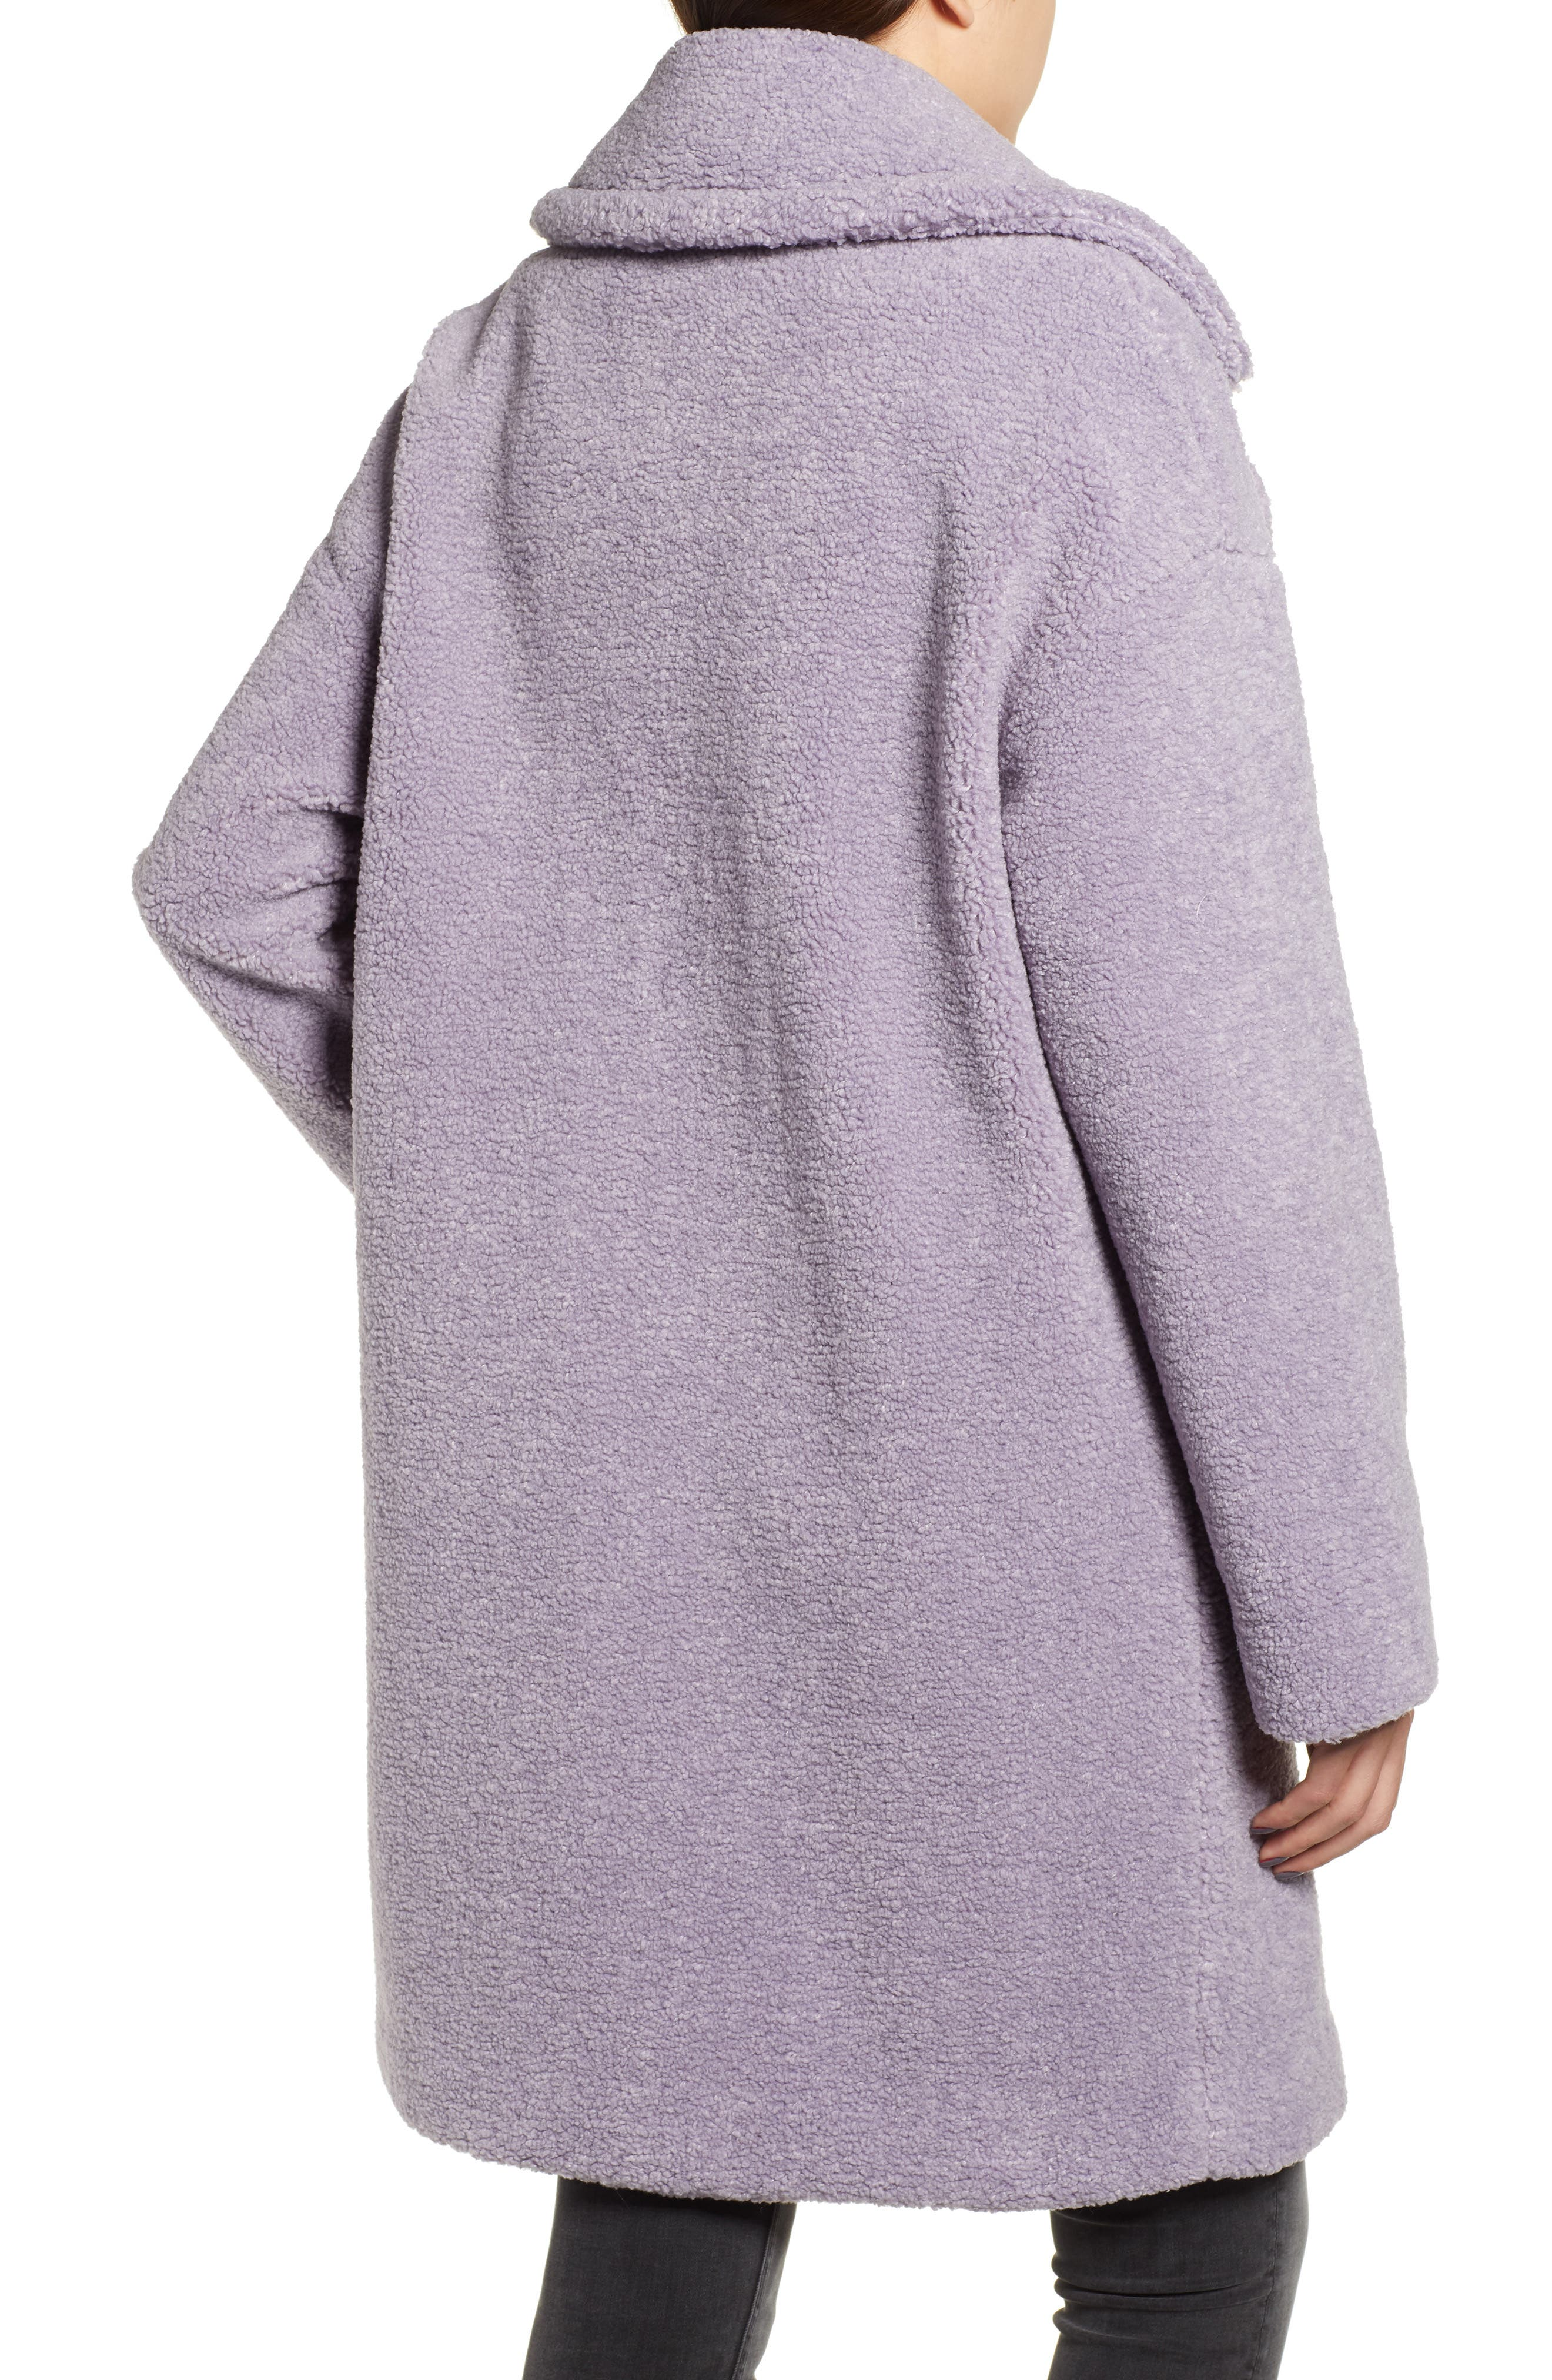 Faux Fur Teddy Coat,                             Alternate thumbnail 2, color,                             LILAC